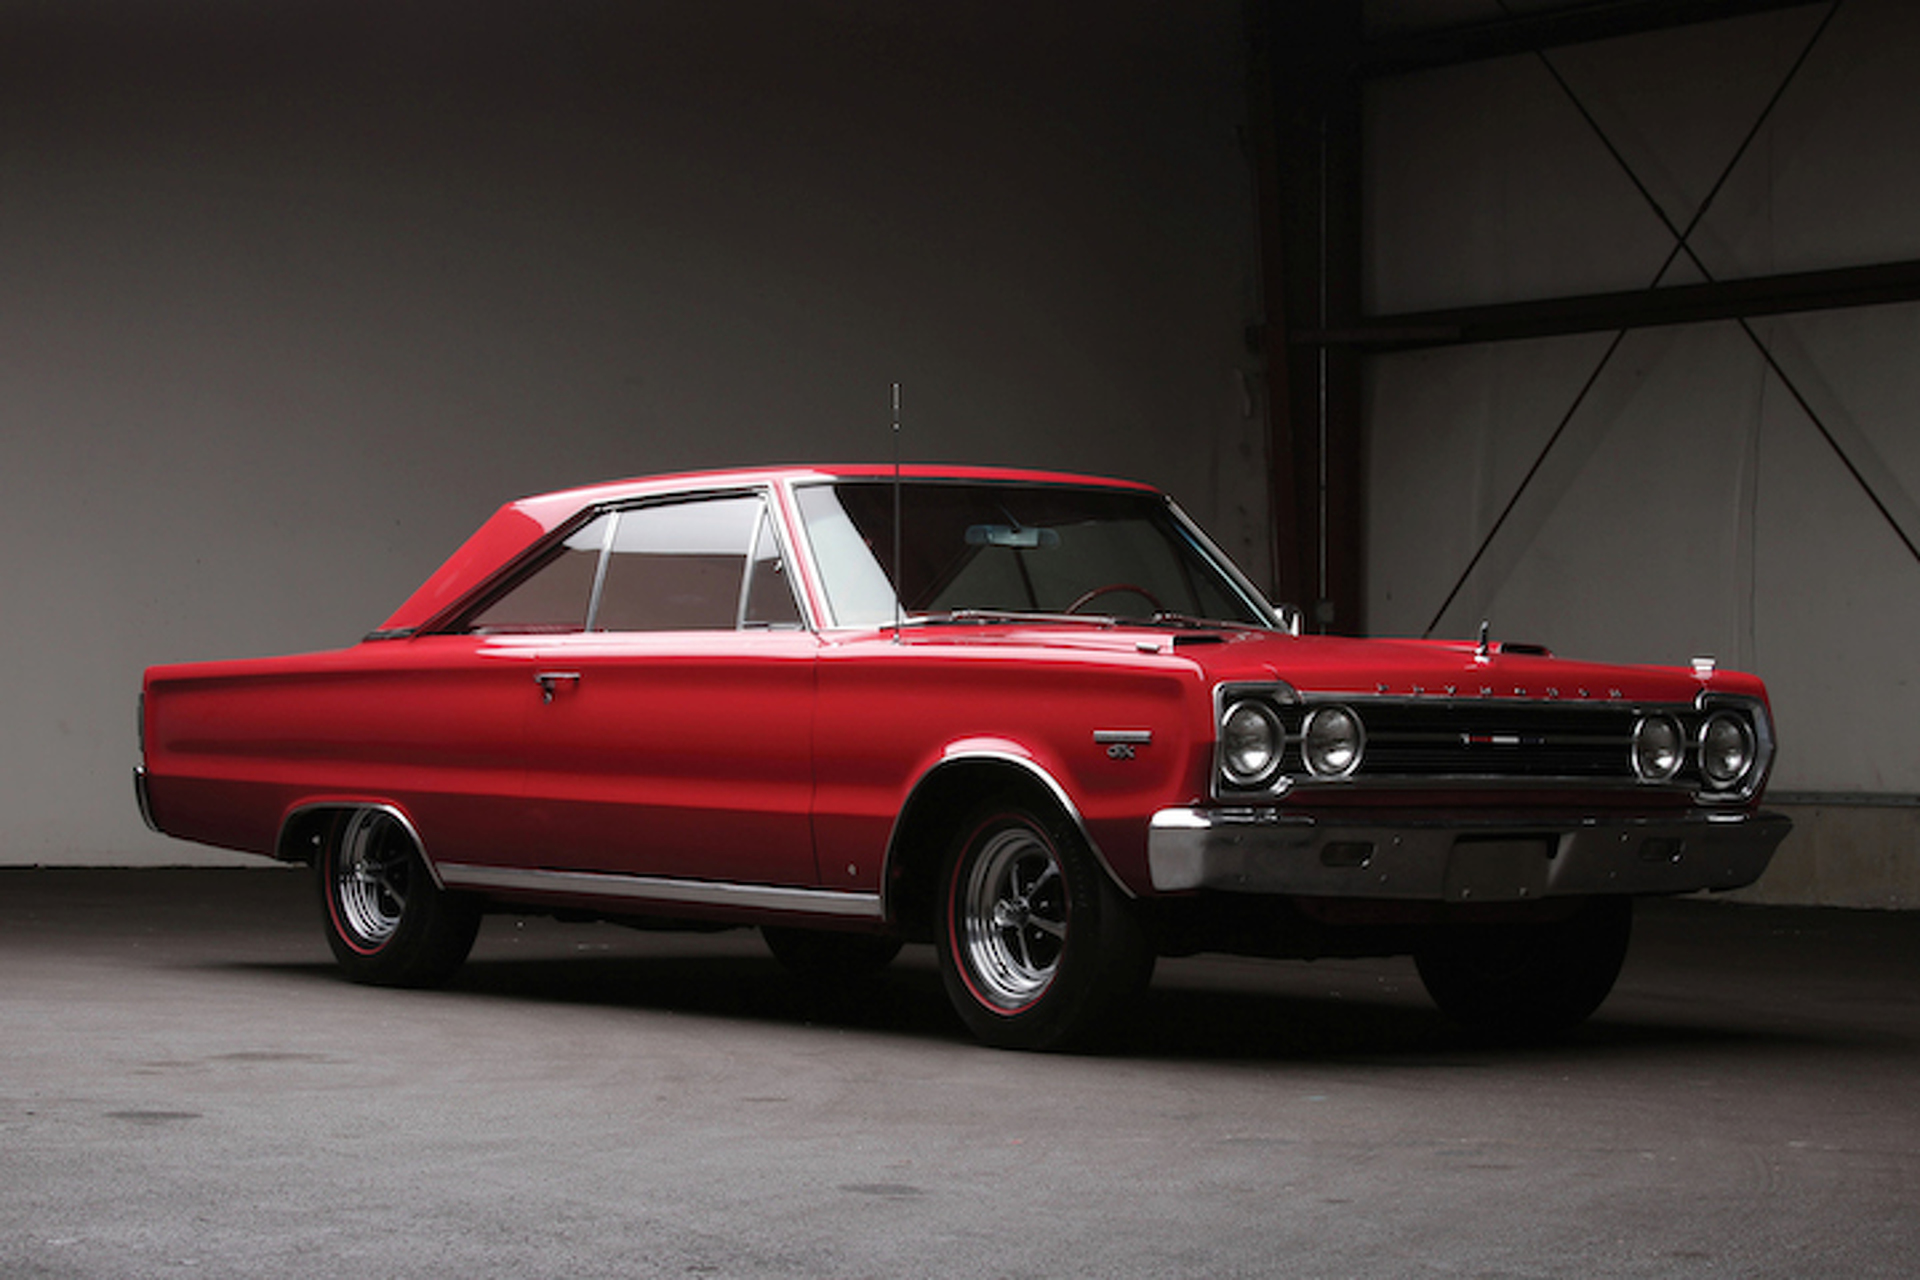 The 1967 Plymouth GTX: Raw Power In a Refined Package